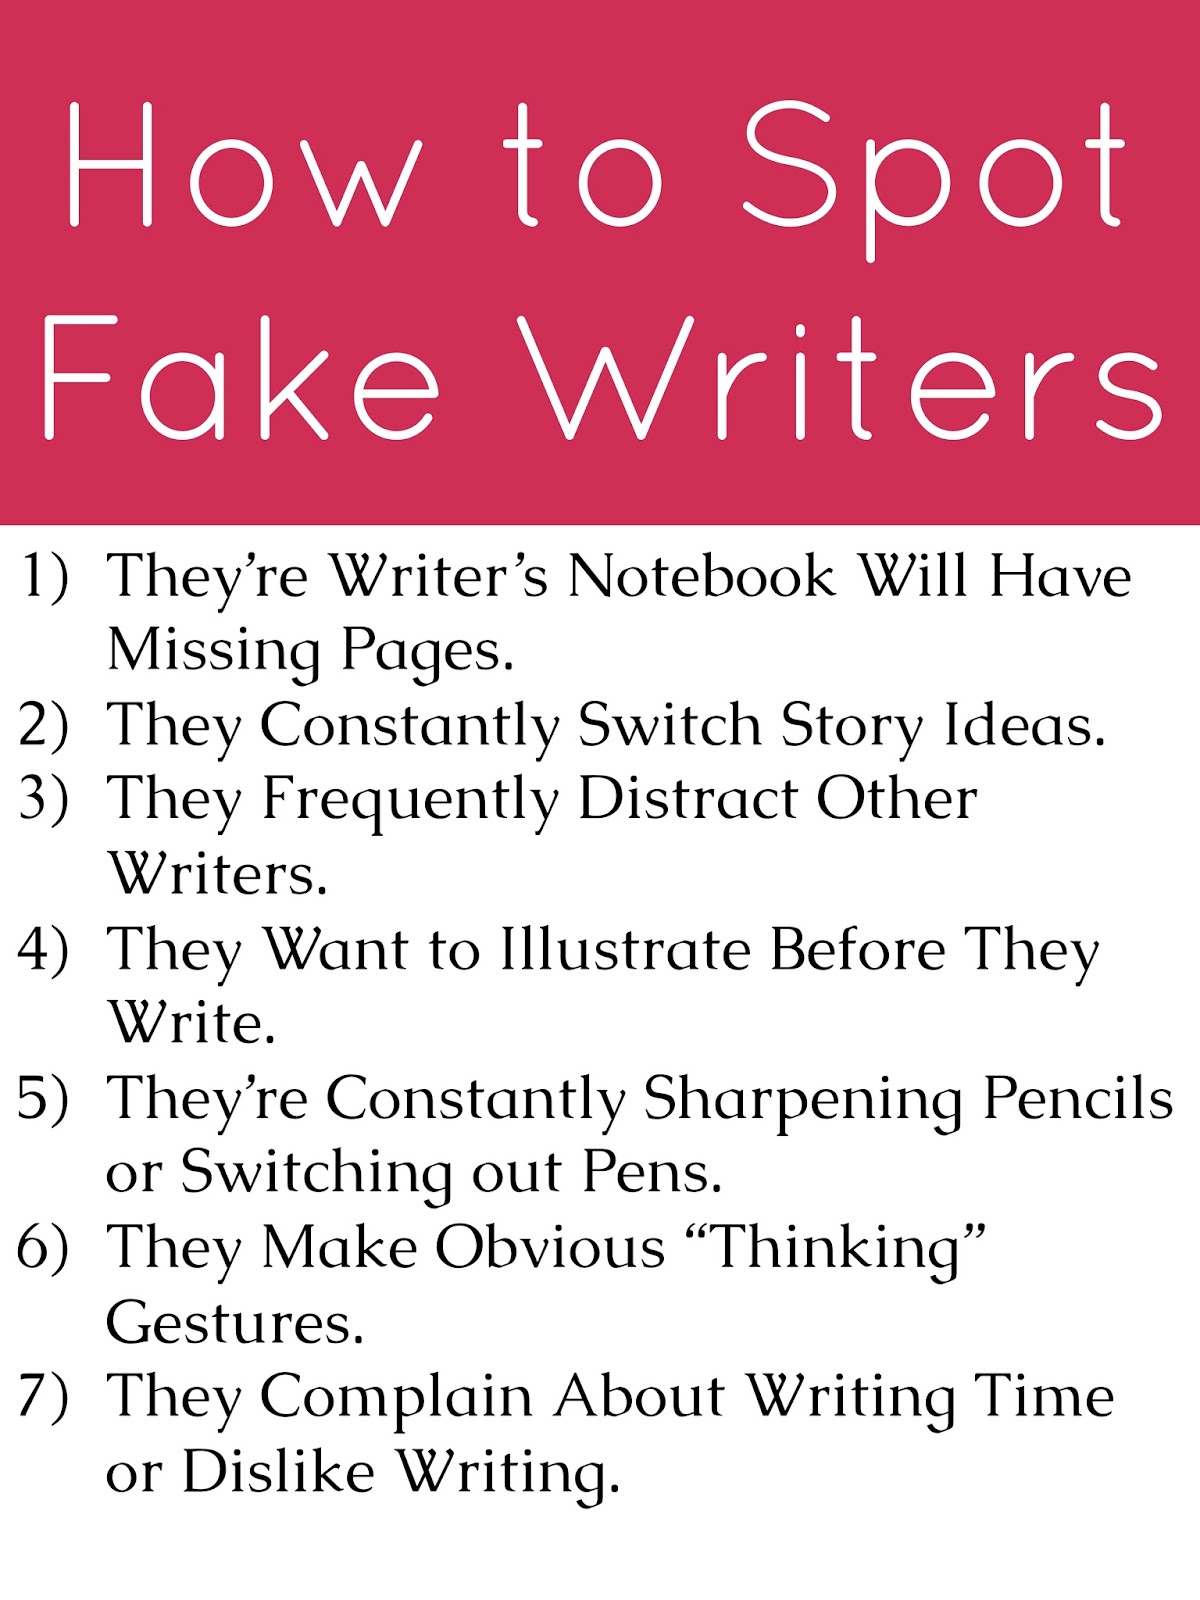 AppleSlices: How To Spot Fake Writers